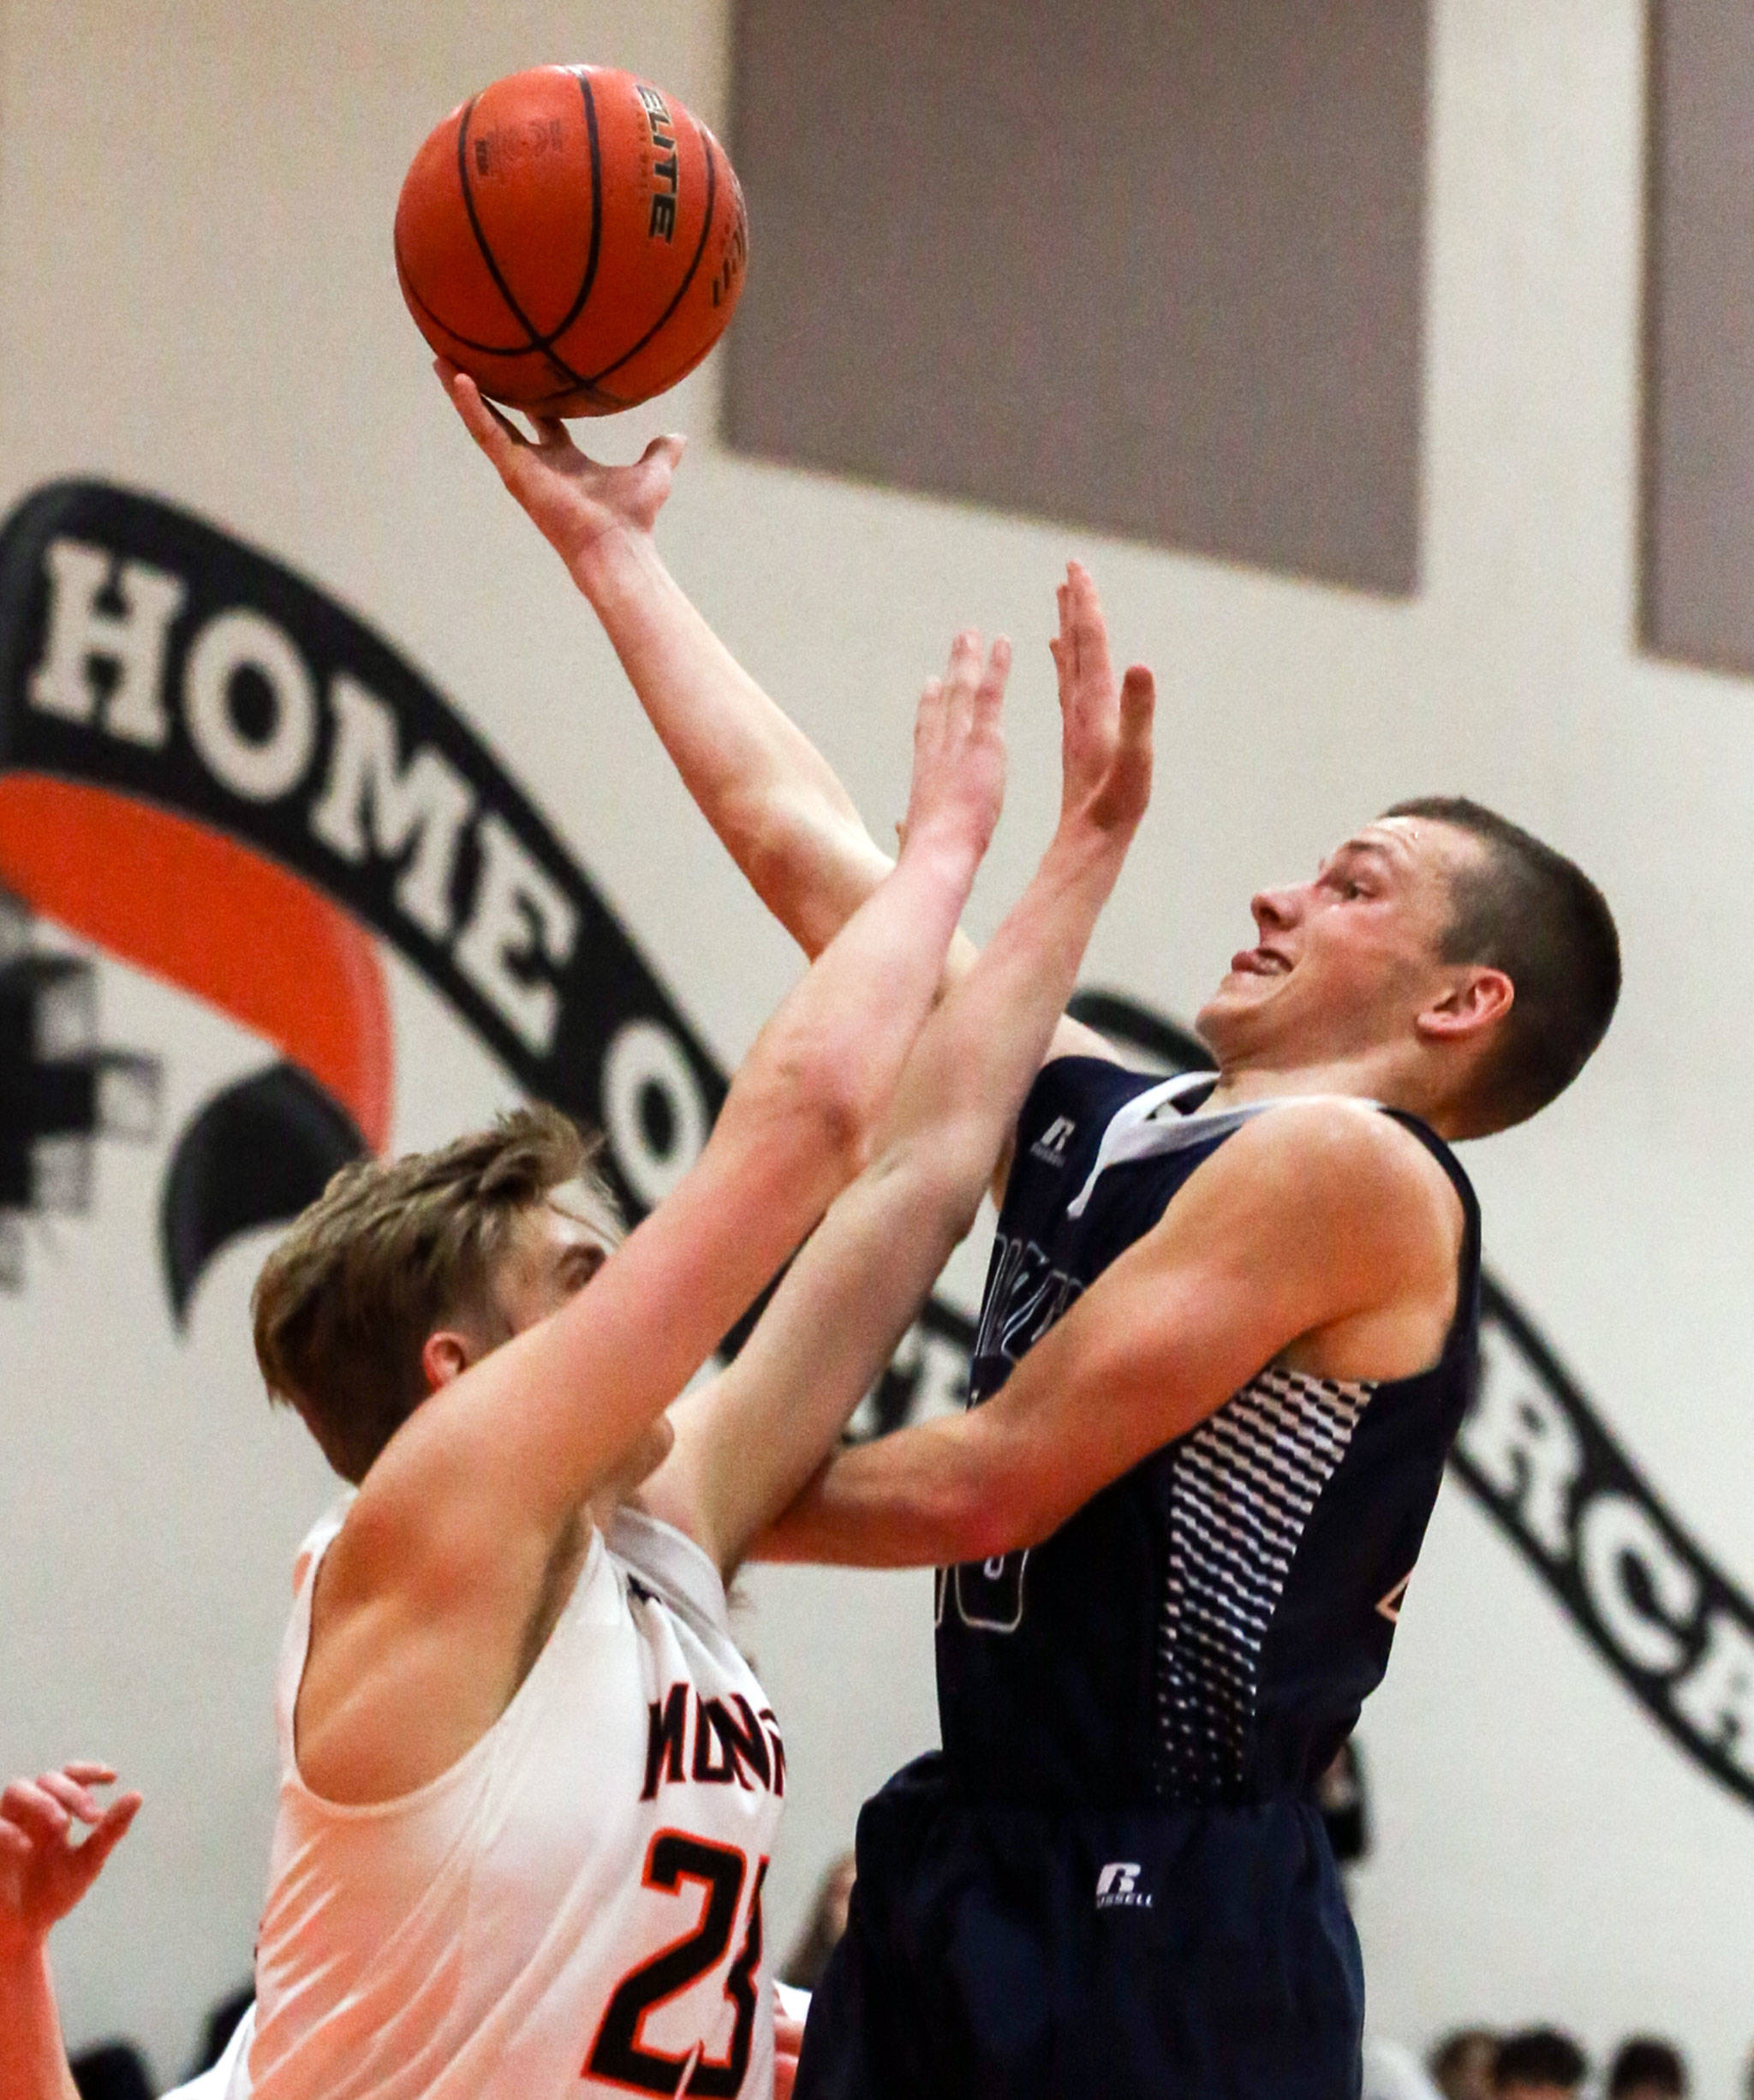 Arlington's Anthony Whitis (left) and attempts a shot over Monroe's Sam Olson on Friday night. Arlington won 62-54. (Kevin Clark / The Herald)